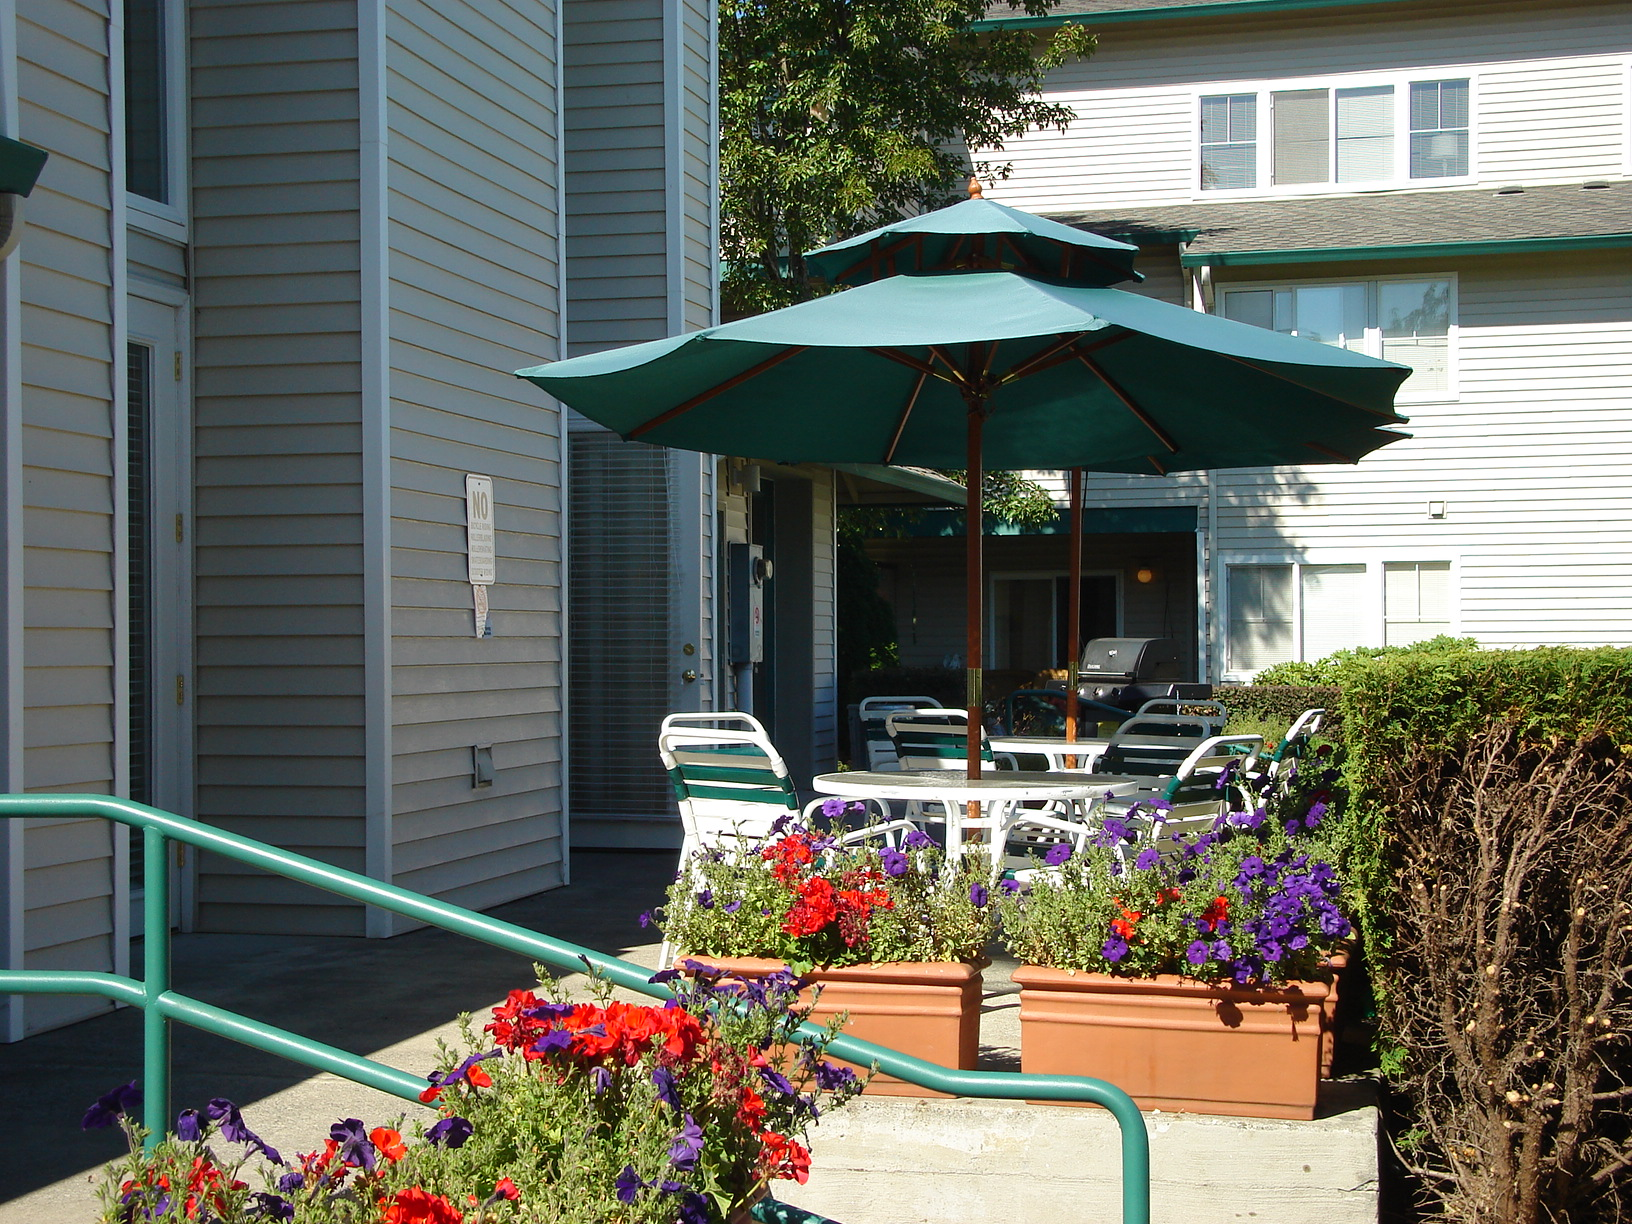 Mountain Meadows Apartments 009.JPG